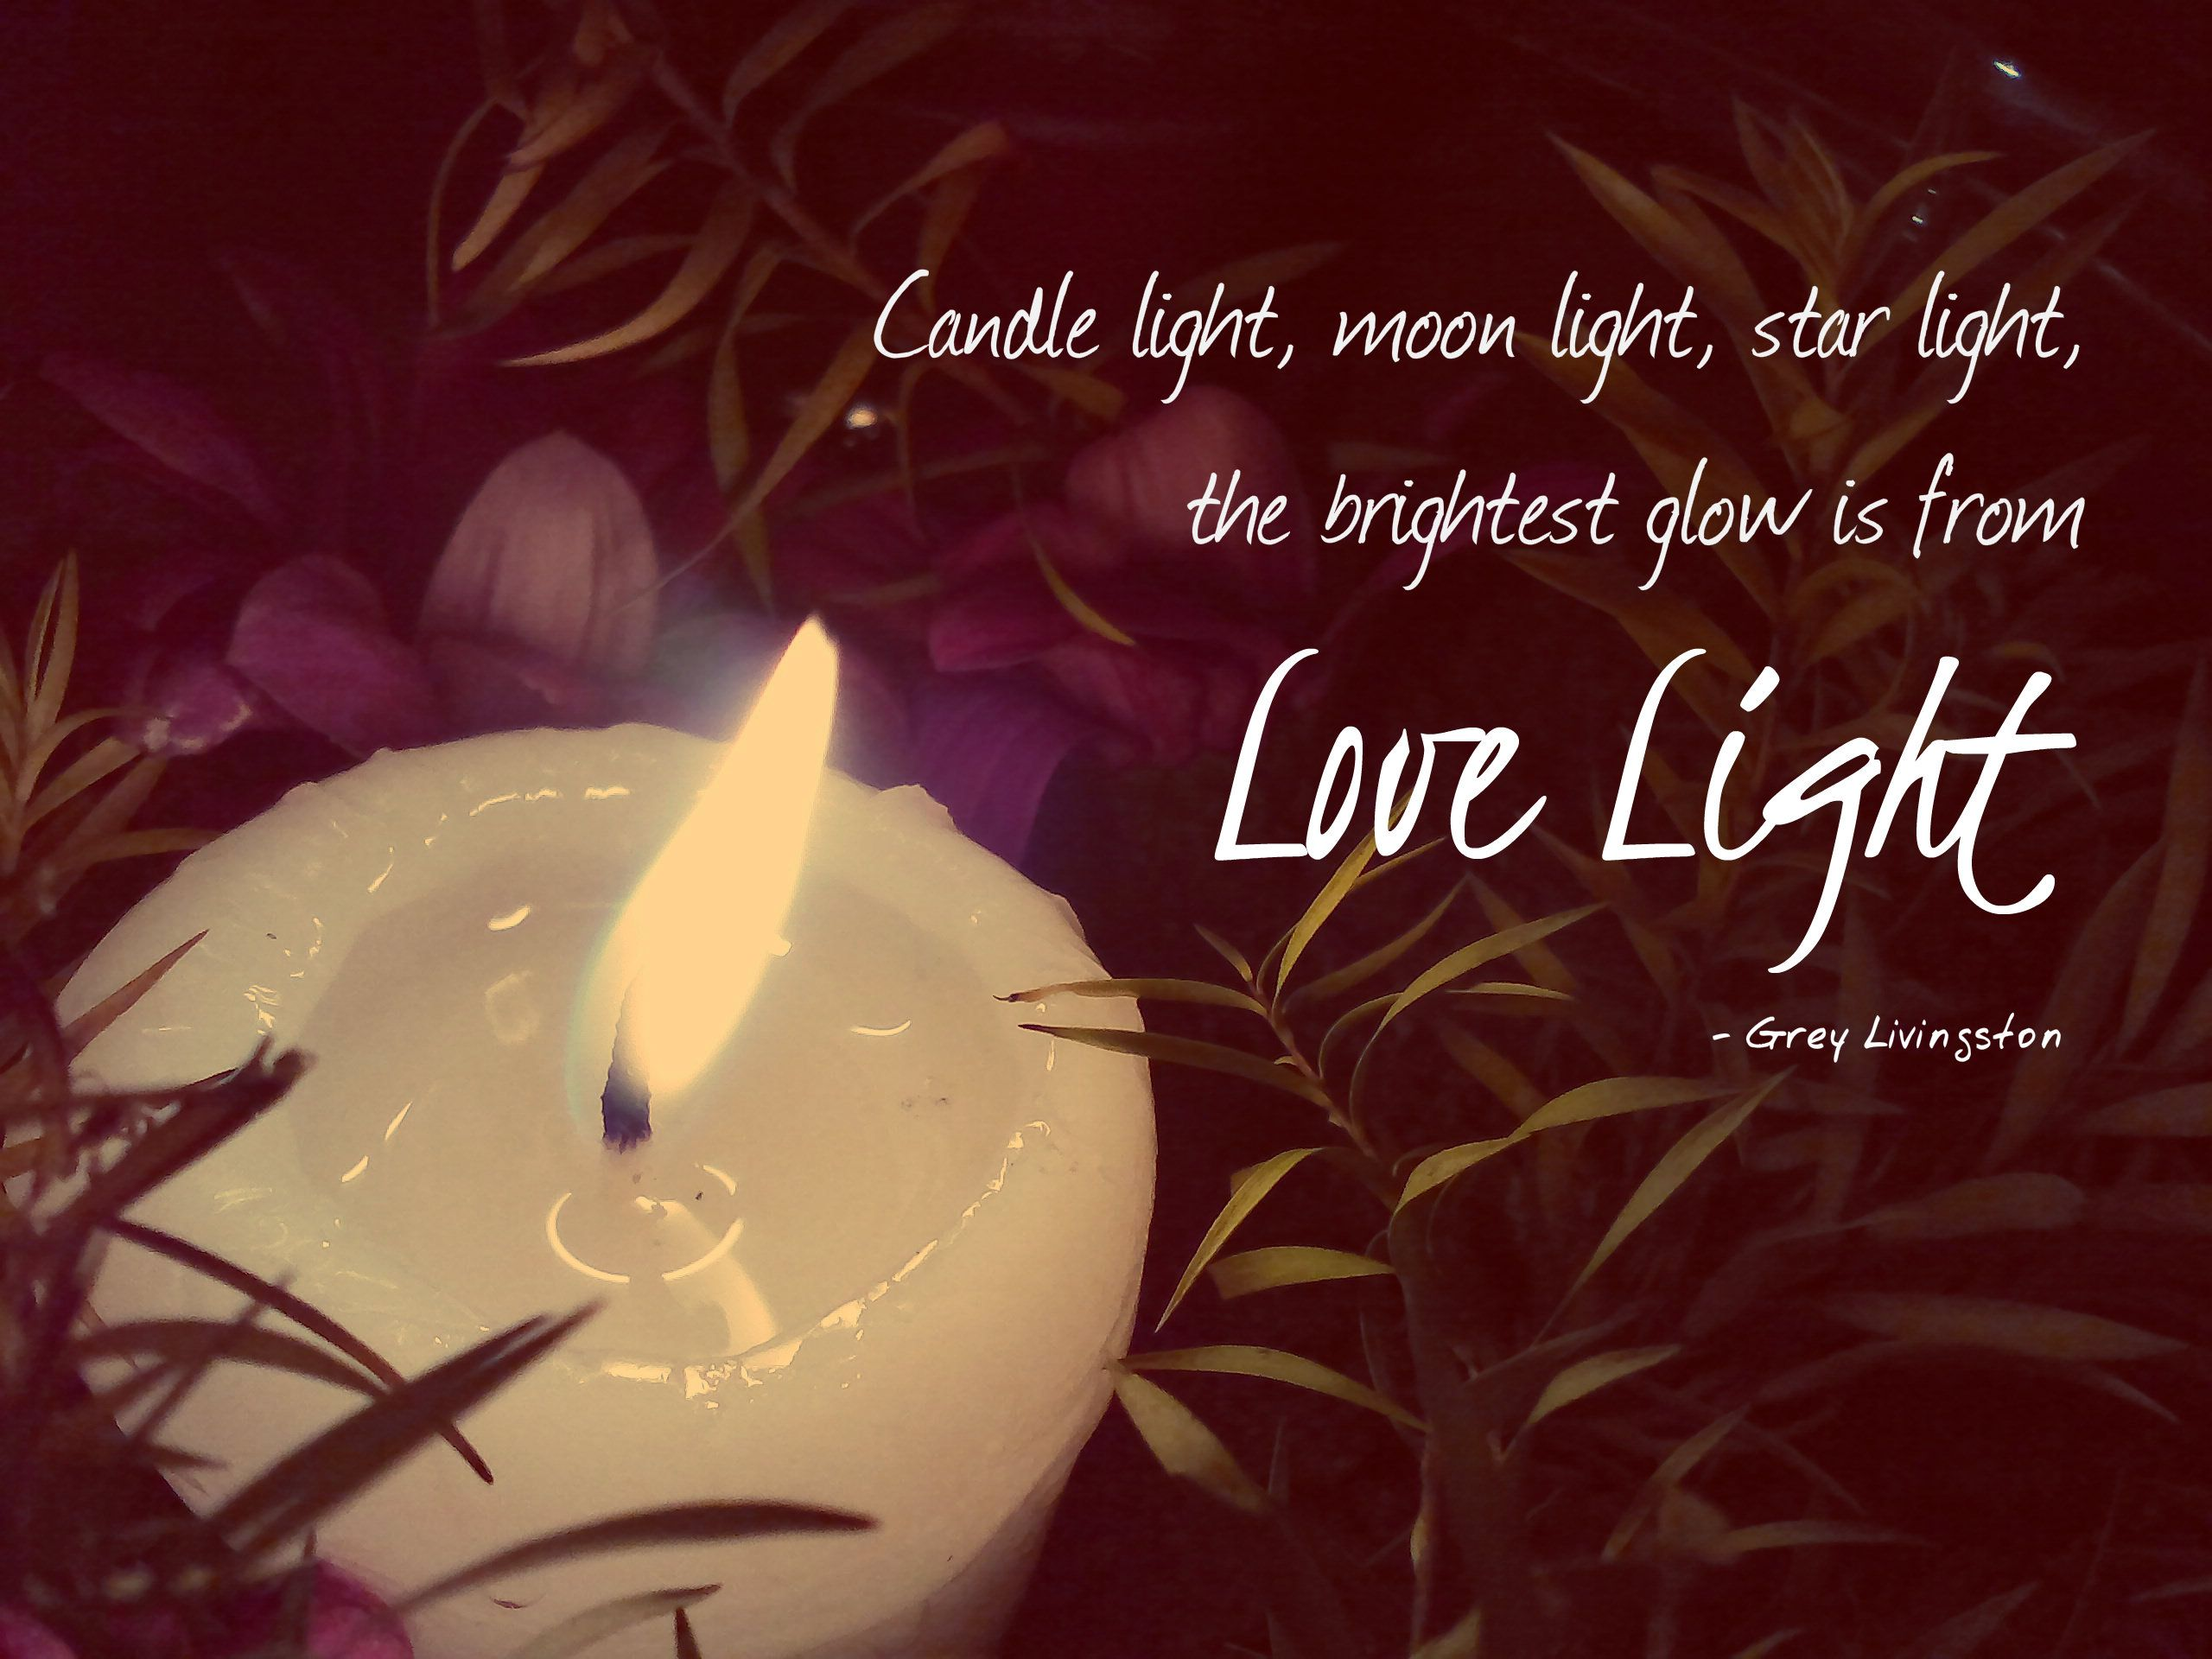 Feb 15 Photo Quote Of The Day Love And Light Photo Quotes Candlelight